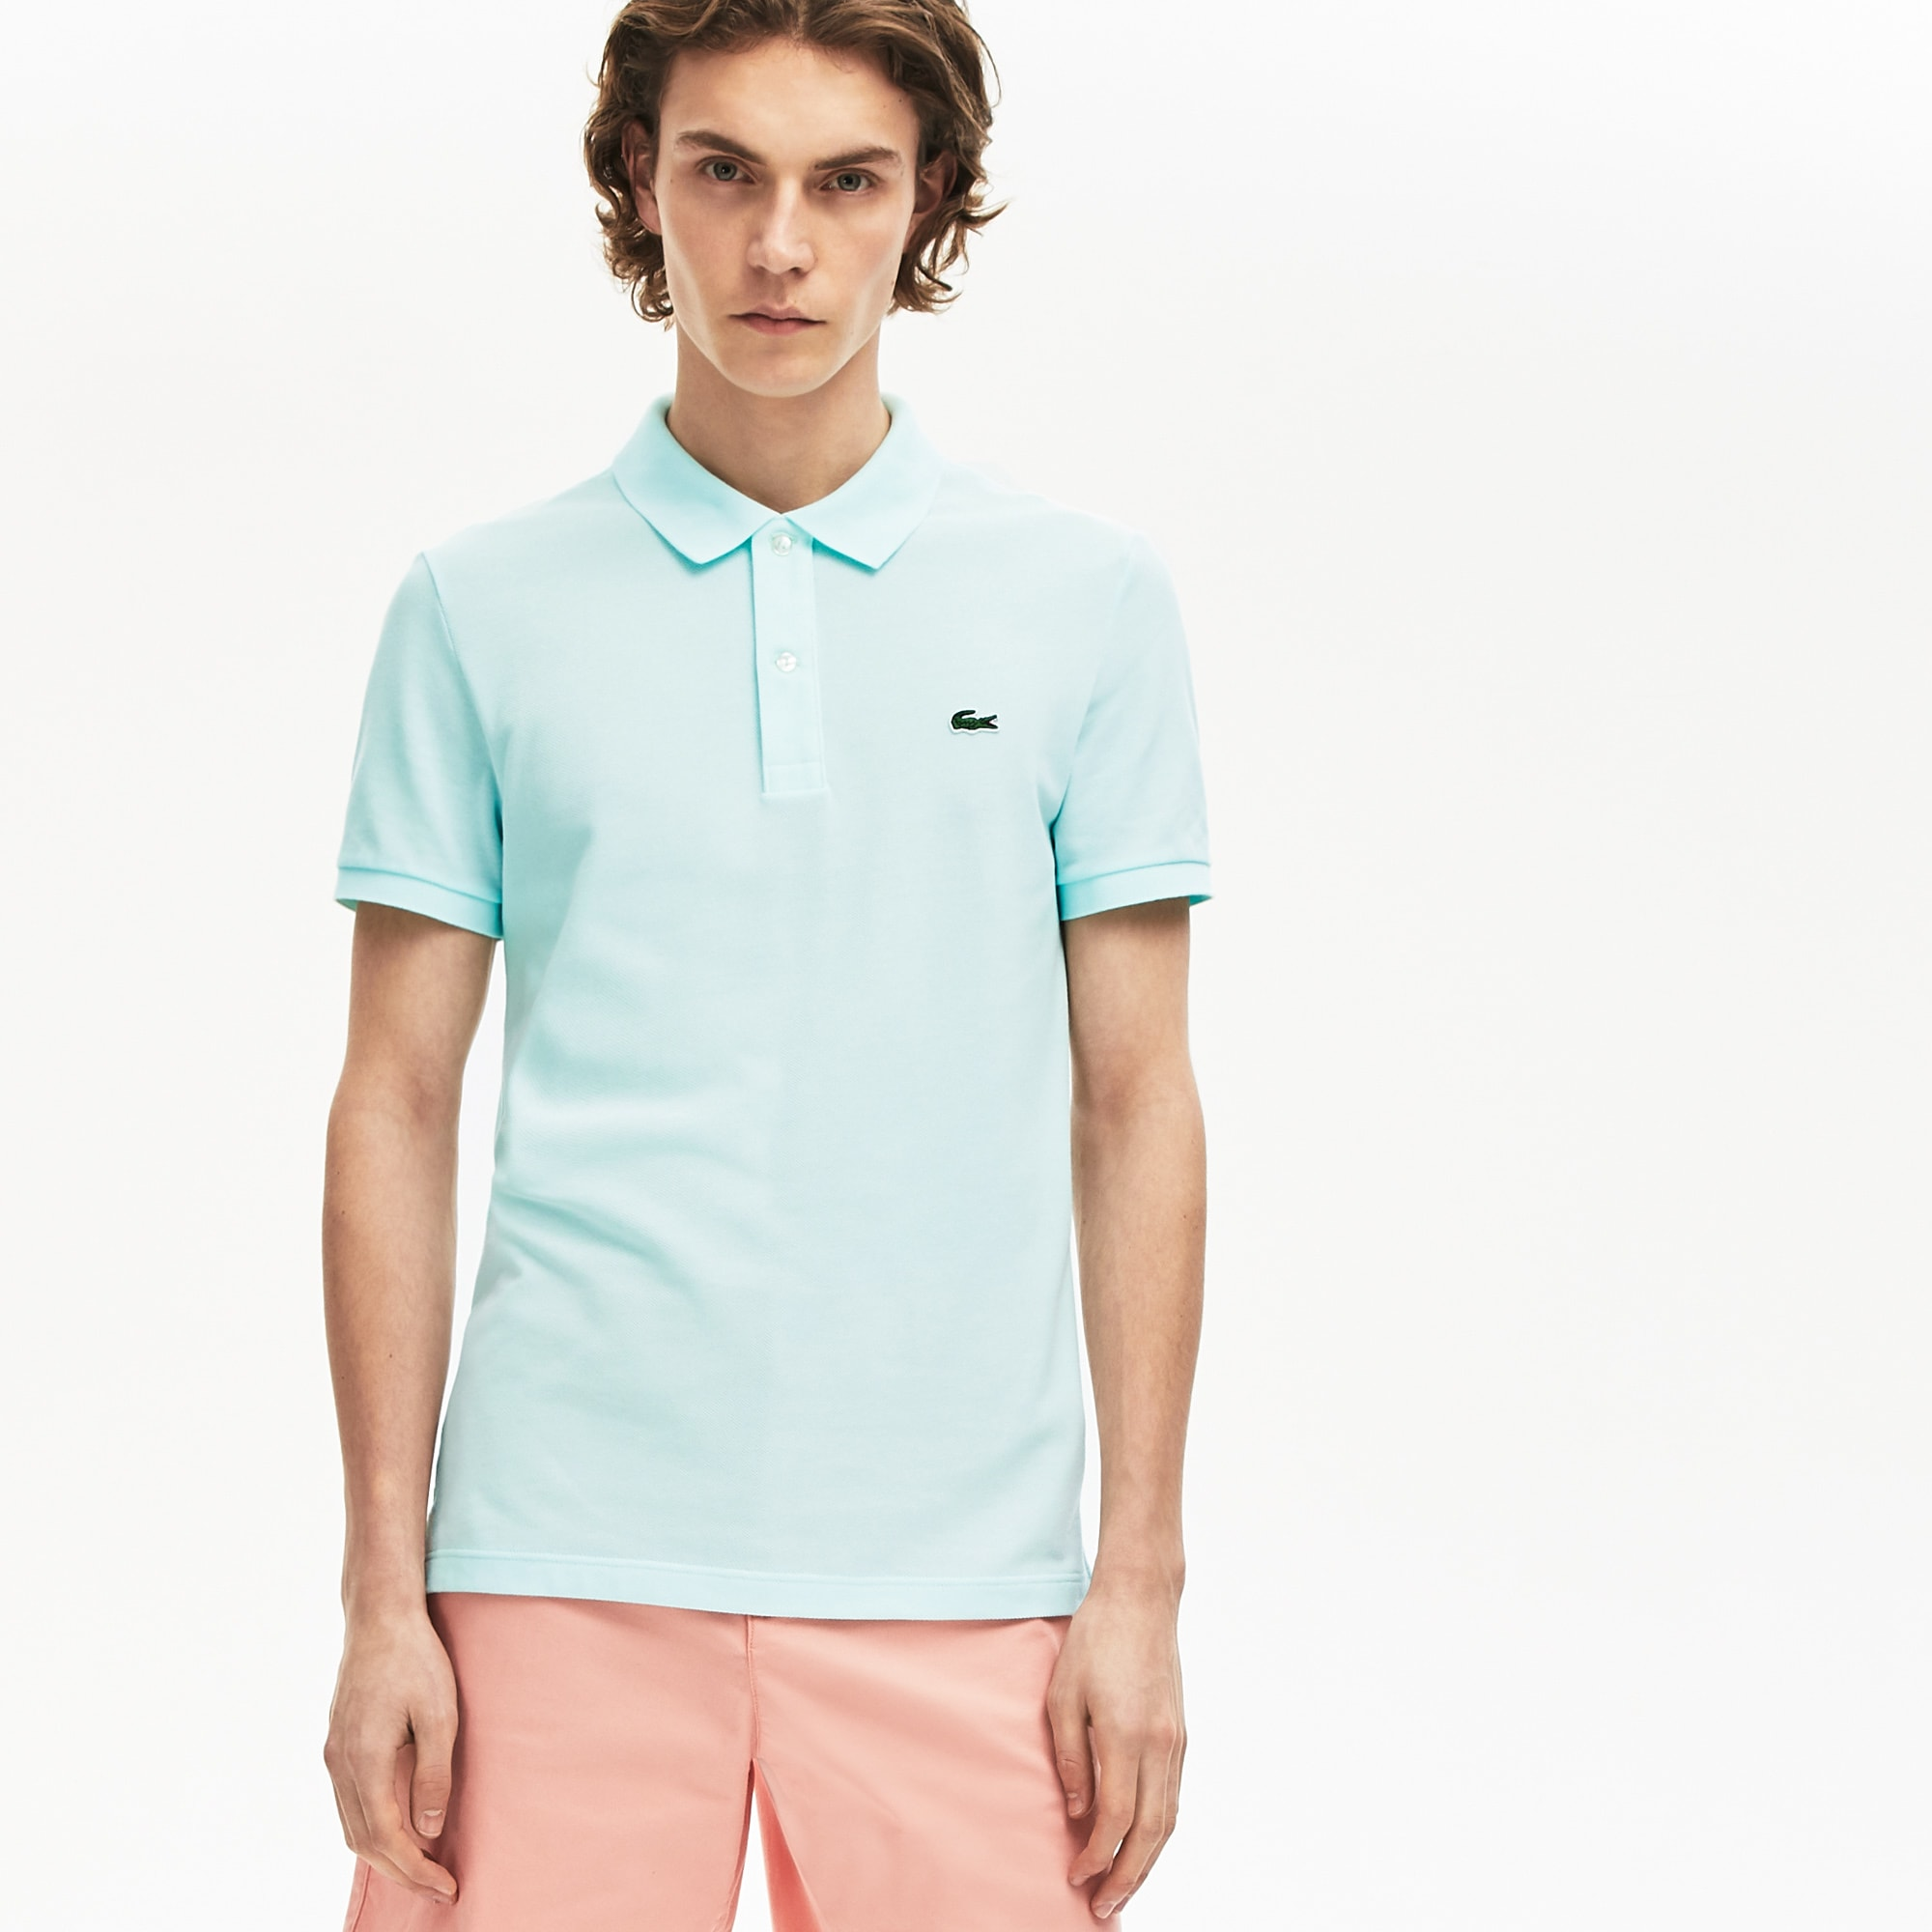 Lacoste Men's Petit Piqu� Slim Fit Polo Shirt : Turquoise